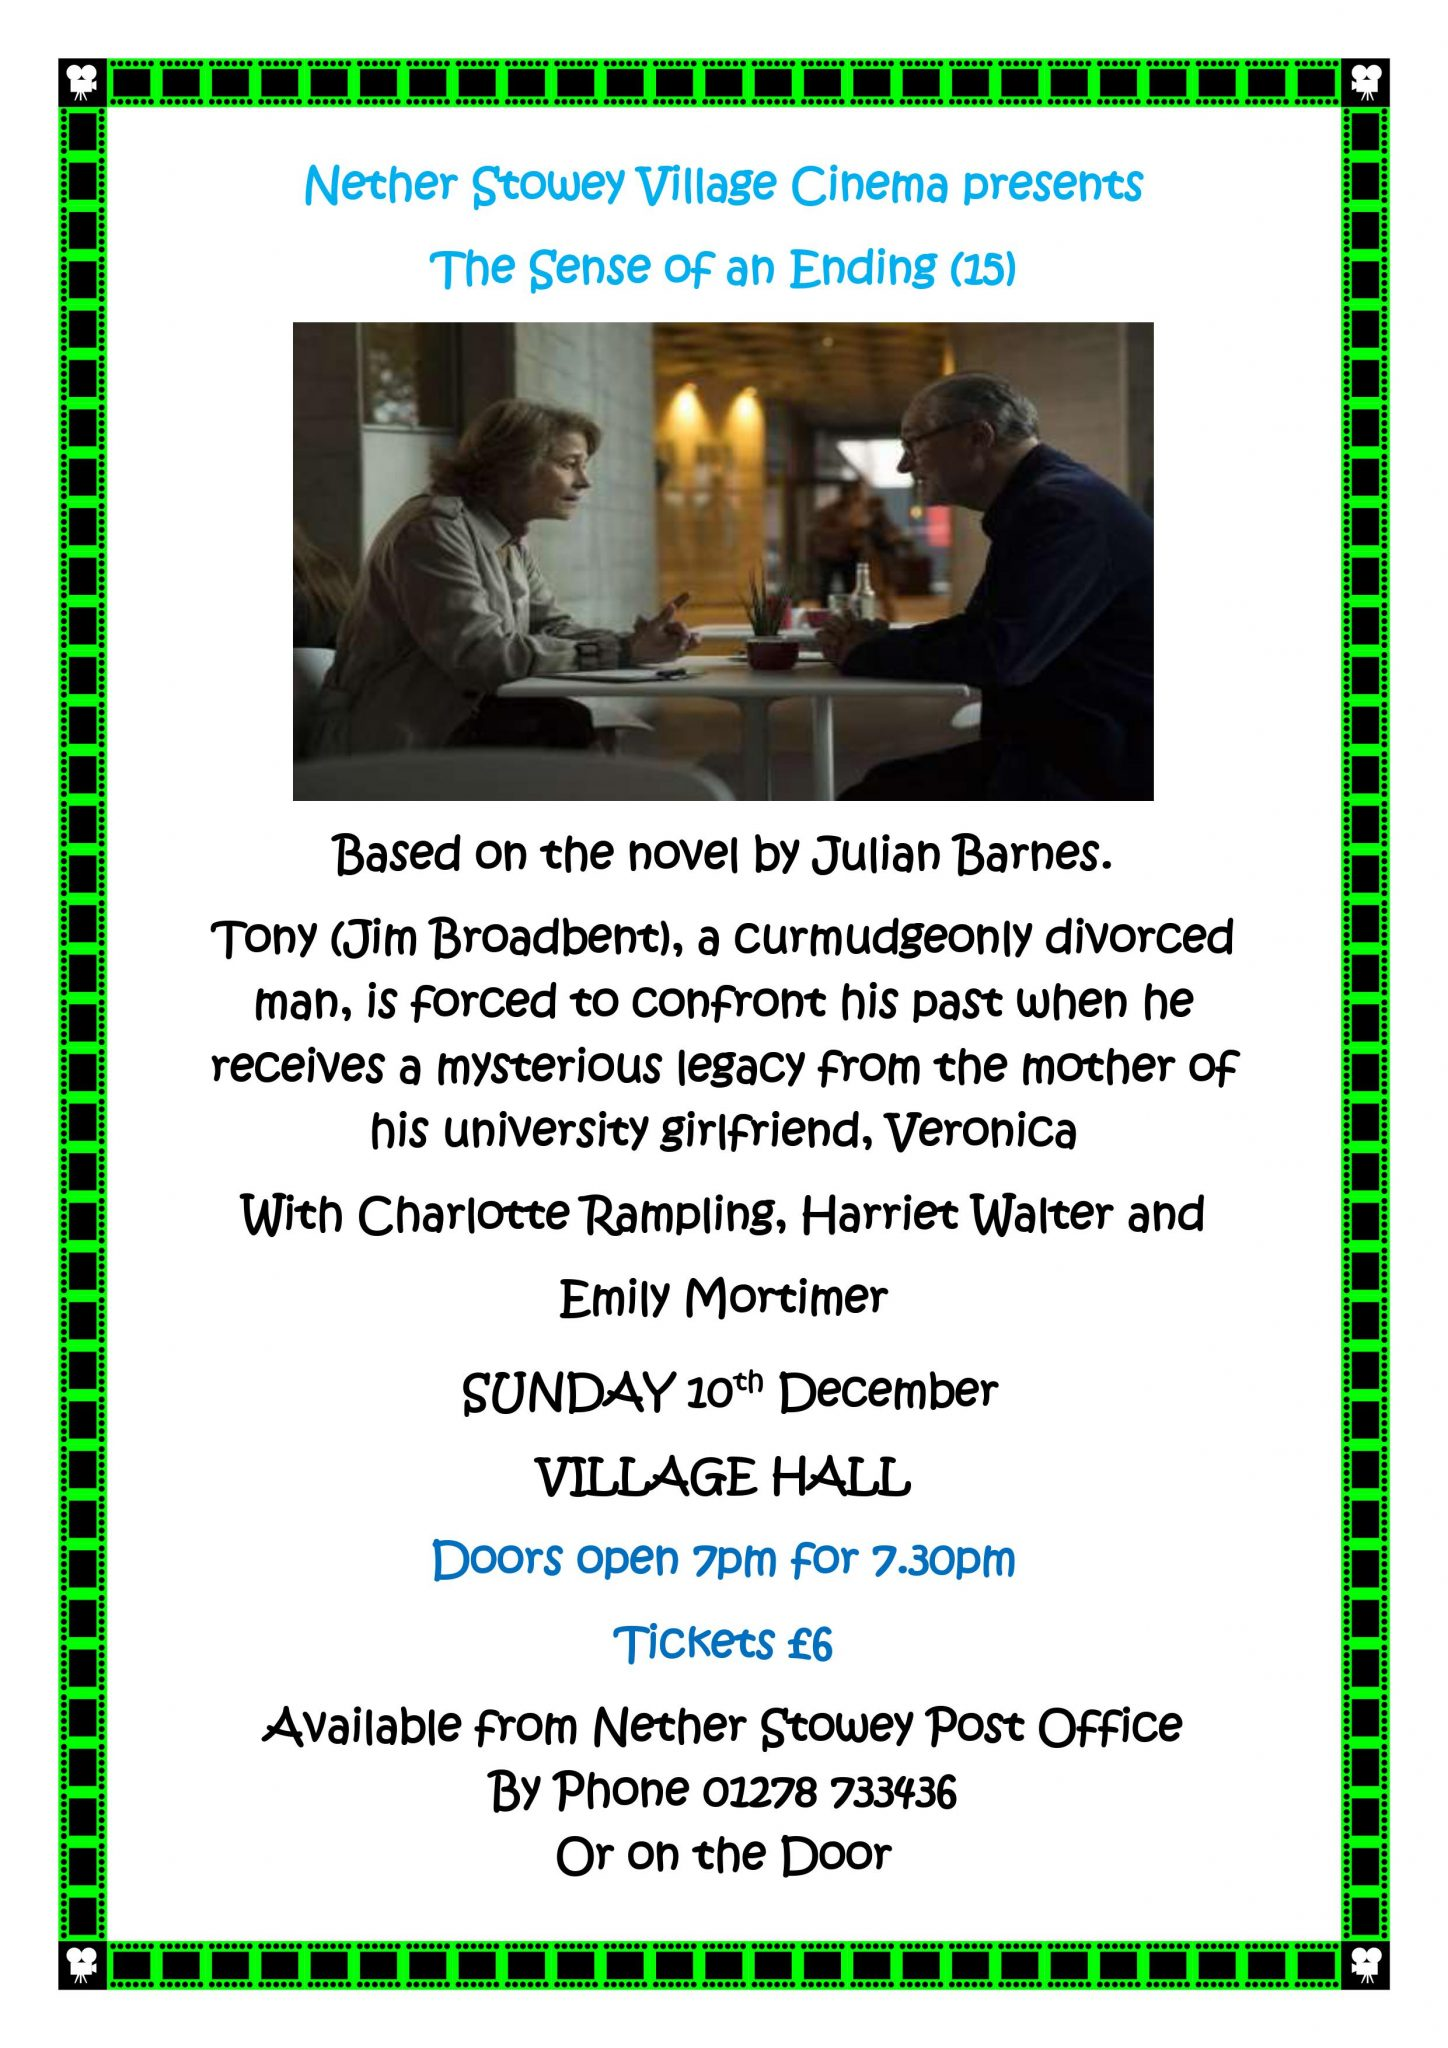 """""""The Sense of an Ending"""" at Nether Stowey Village Cinema @ Nether Stowey Village Hall 